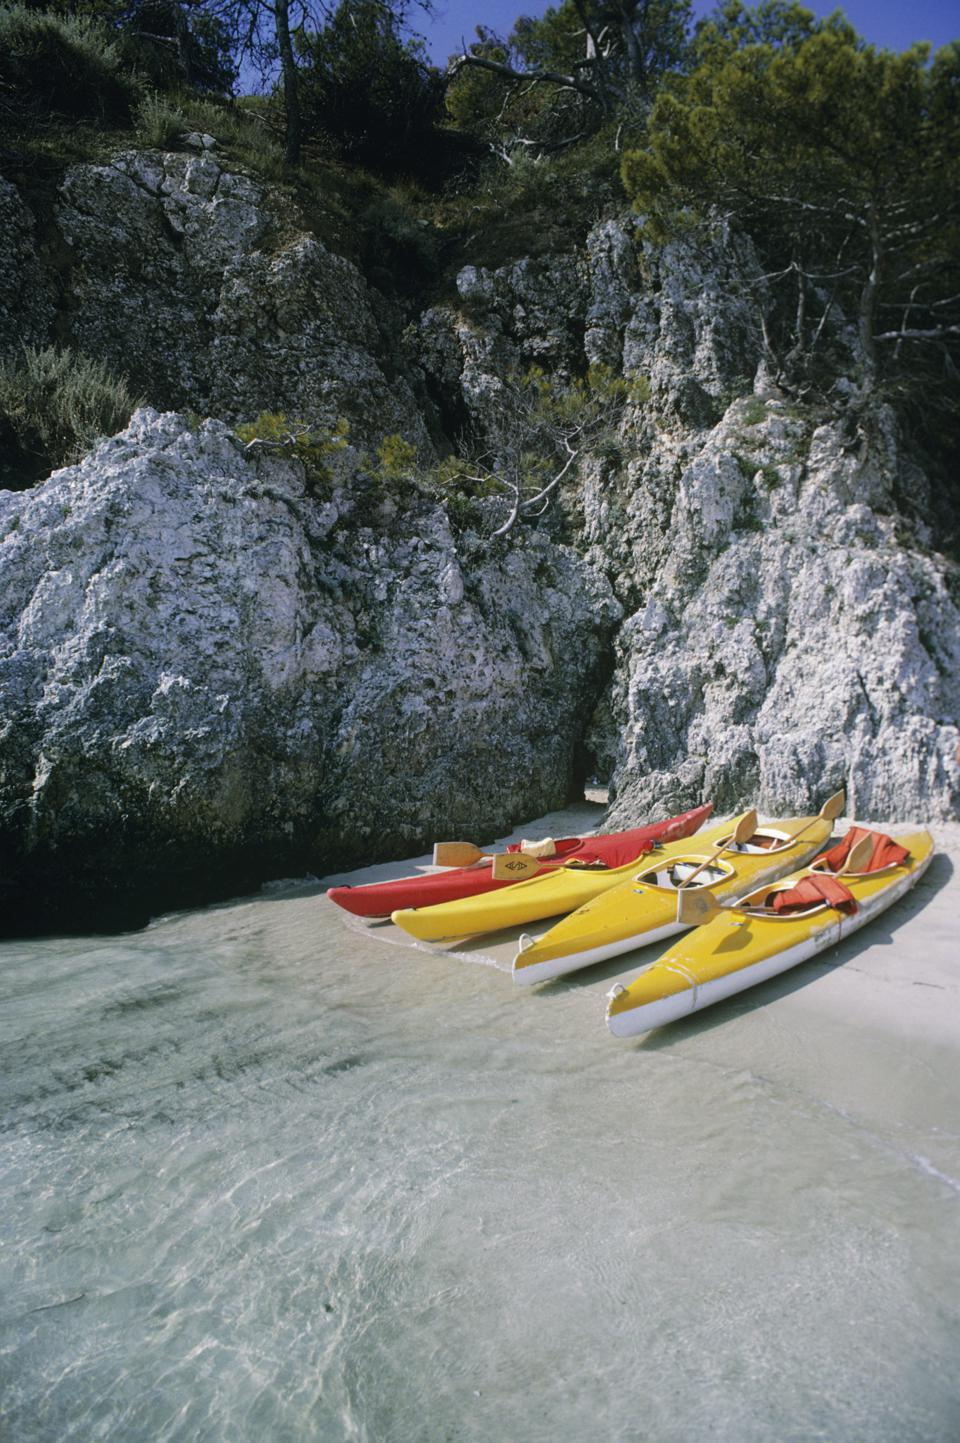 Italy, Cala delle Arene, San Domino, Tremiti Island, Kayaks on shore